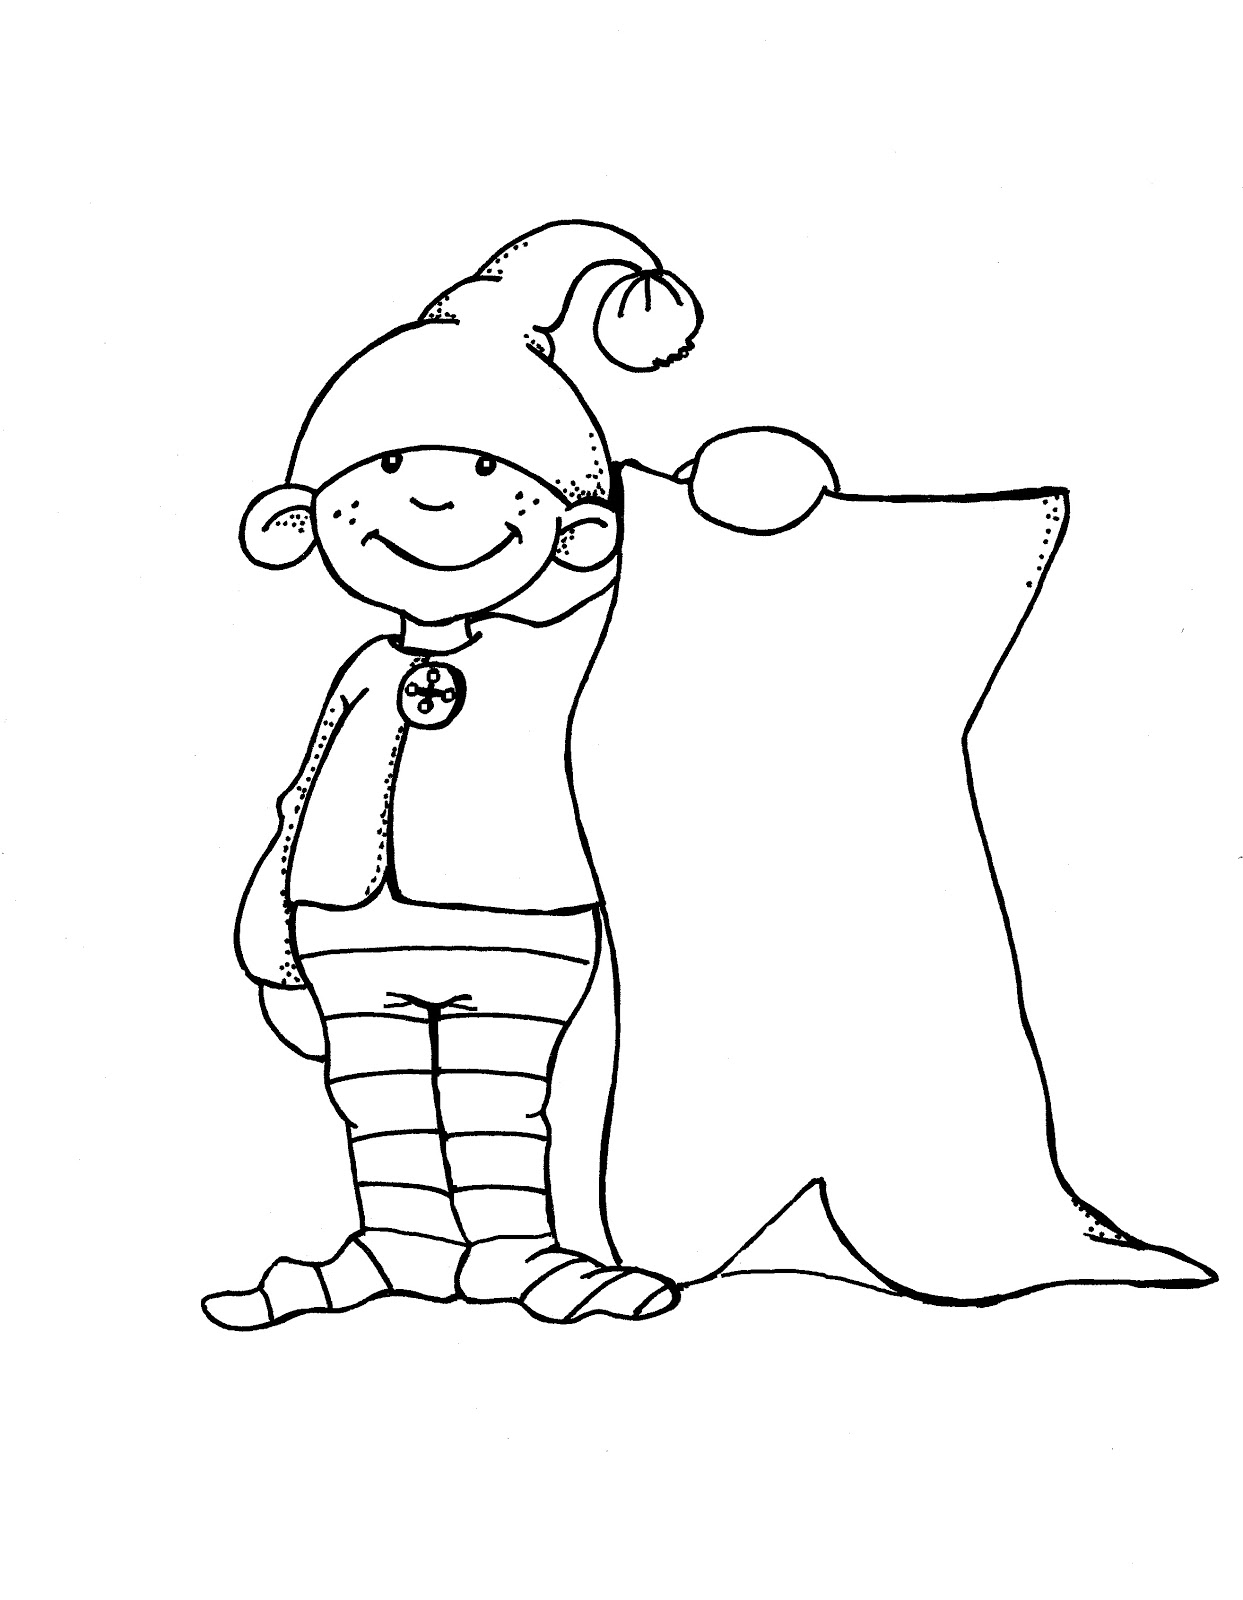 nisse coloring pages - photo#4